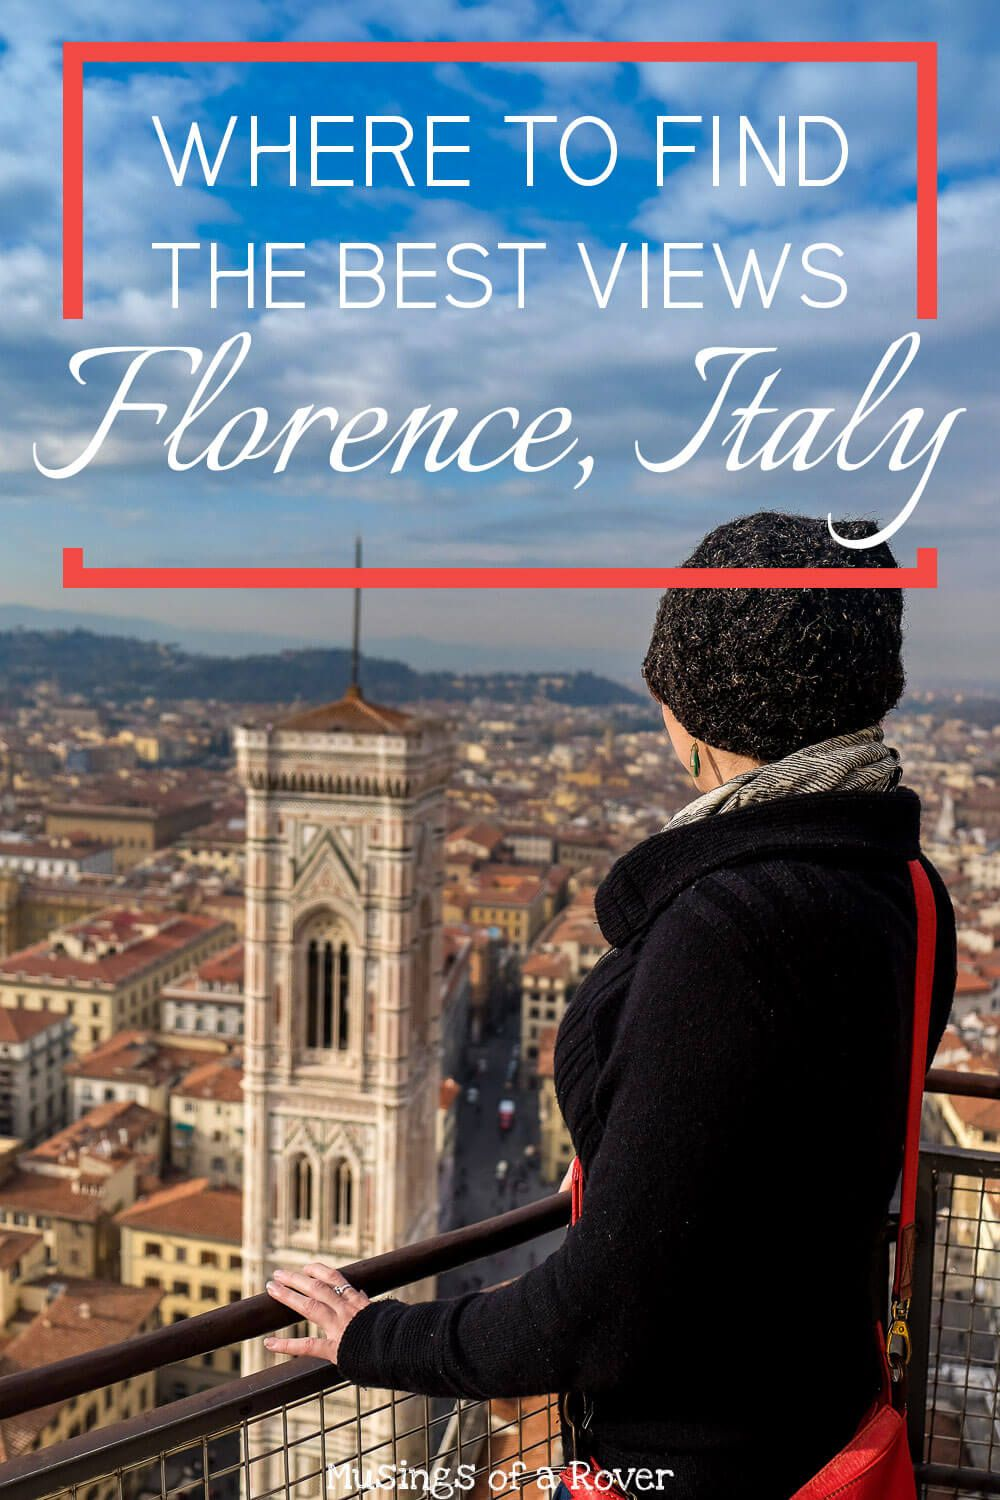 Looking for the best views in Florence, Italy? This list has you covered with details on climbing the dome, giotto's bell tower (campanile), piazzale michelangelo, and caffe la terrazza. florence travel tips, italy travel tips, italy things to do, florence things to do, italy guide, florence guide, italy travel advice, florence travel advice,